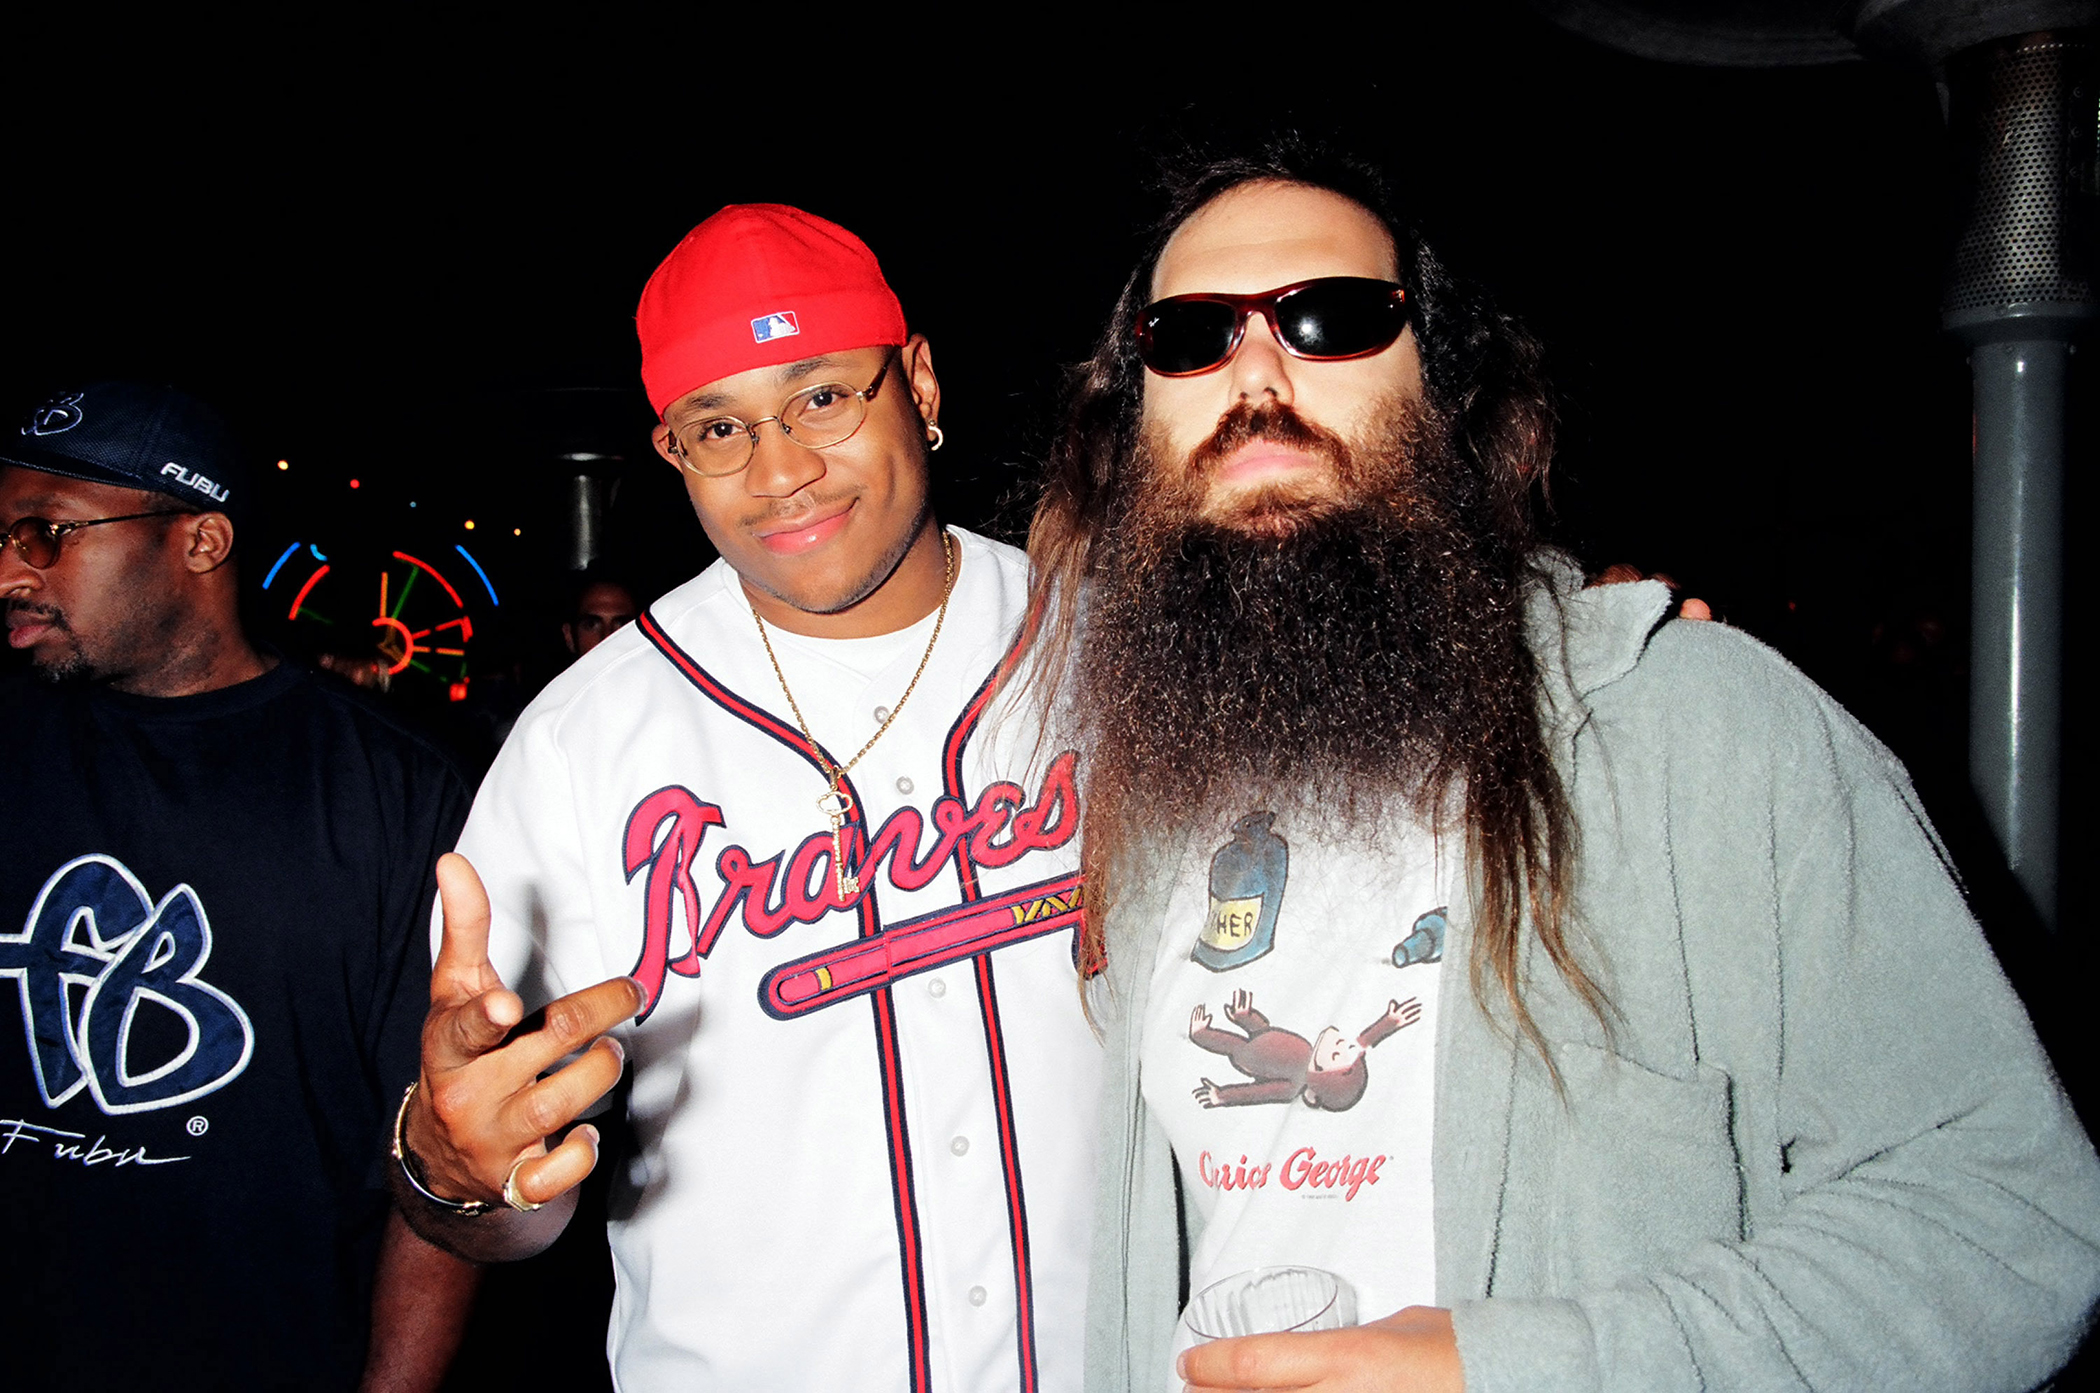 LL Cool J and Rick Rubin during MTV Life Beat in Los Angeles, September 7, 1997.